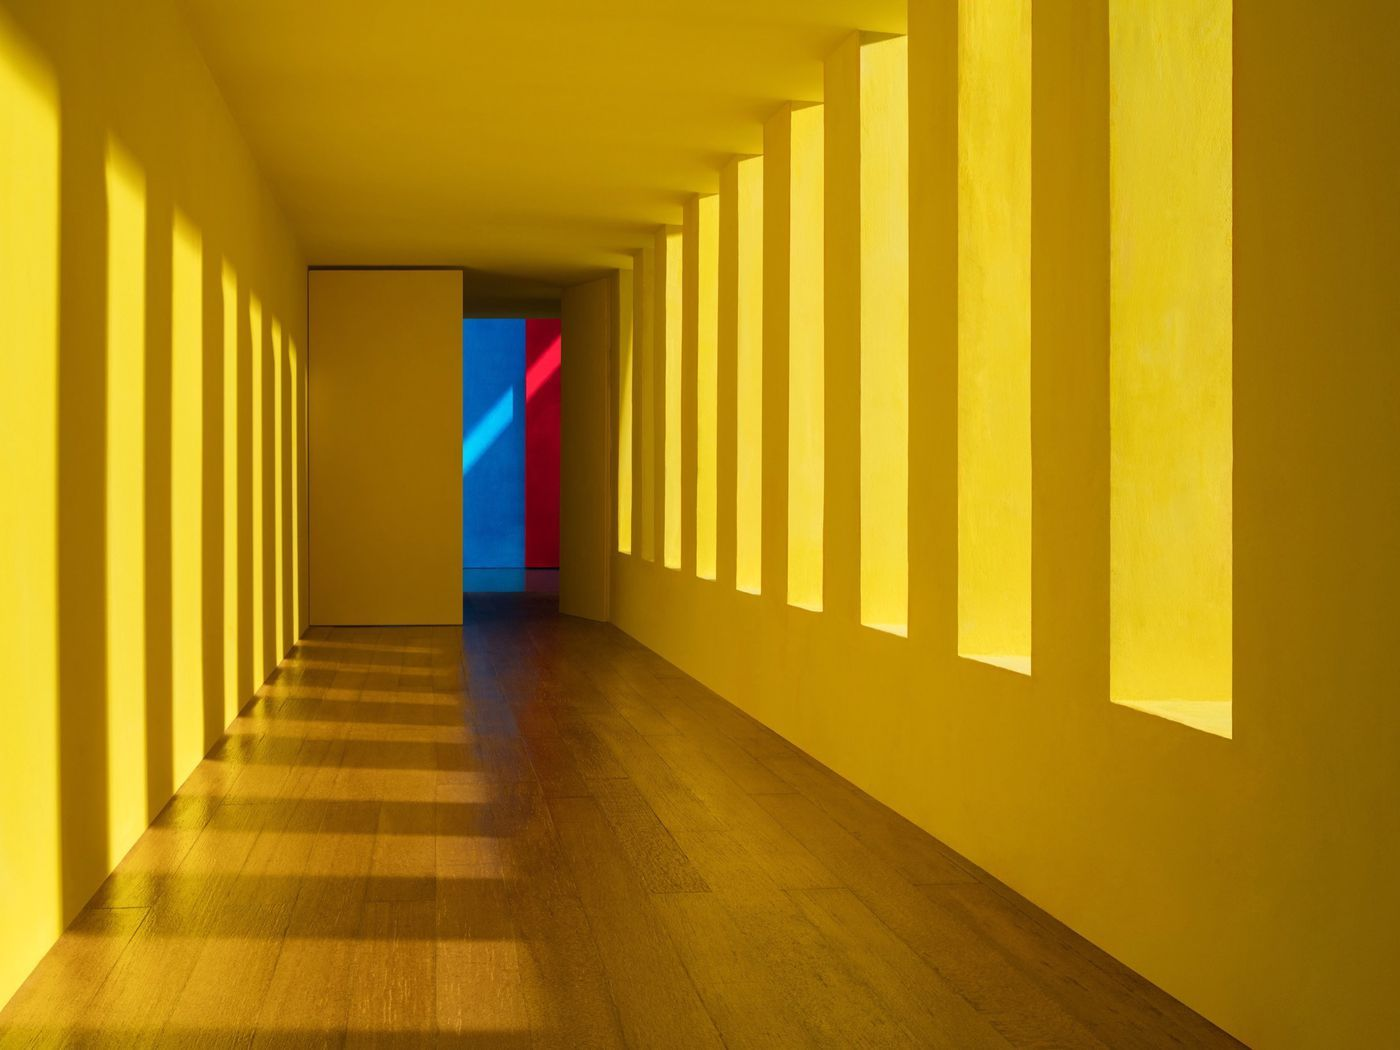 Luis Barragán's iconic architecture recreated in evocative photography exhibit